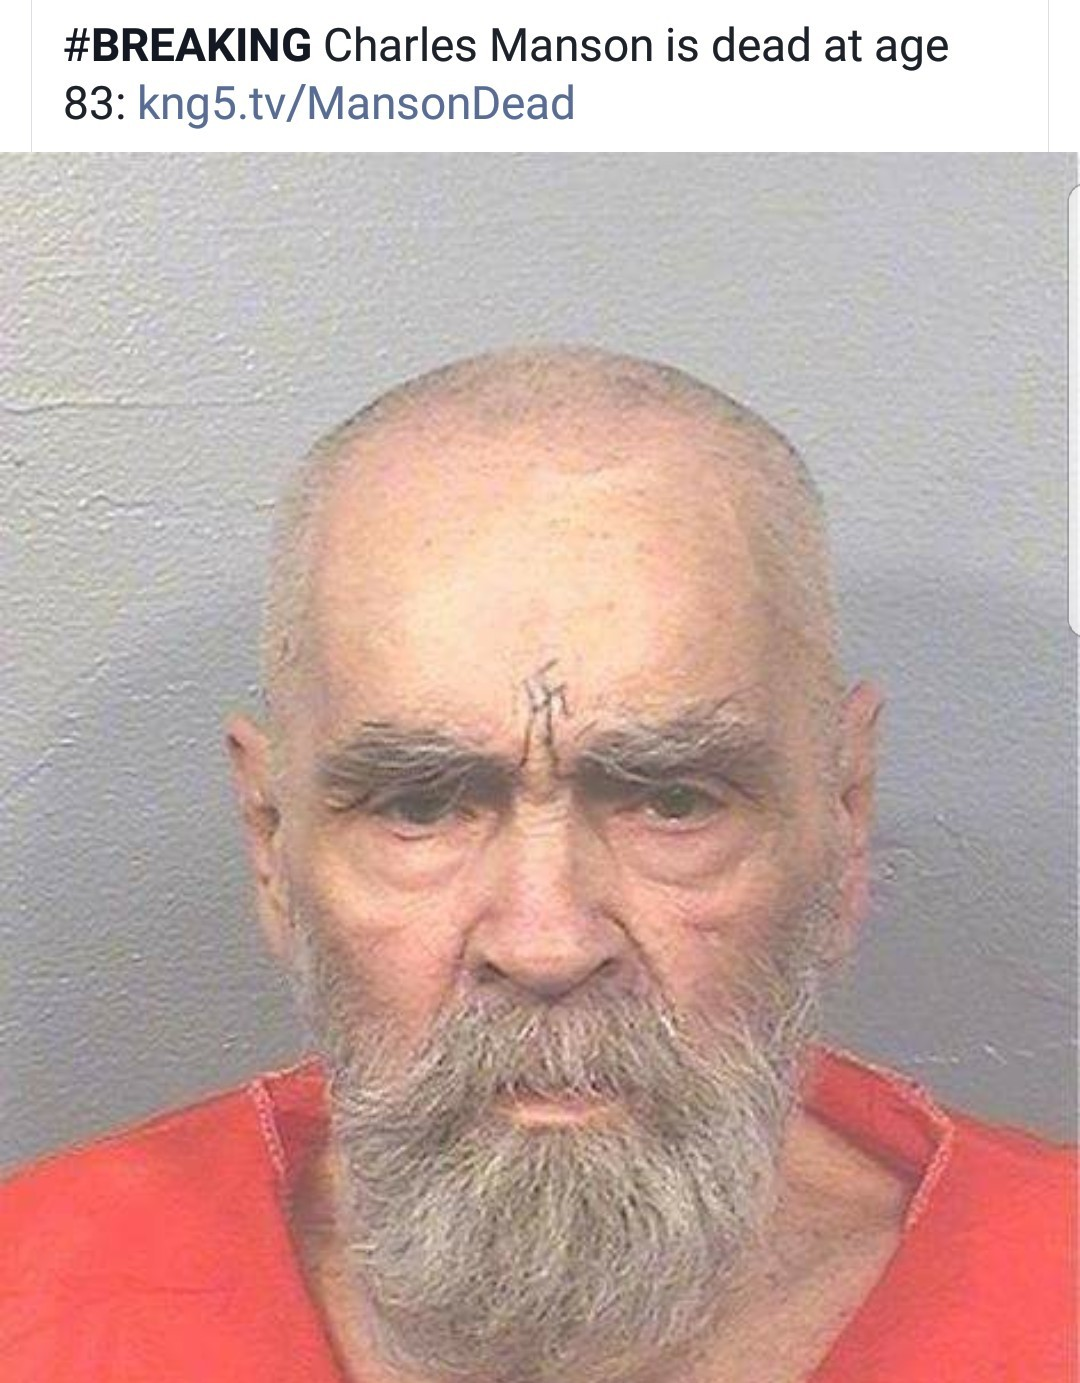 Died in Bakersfield, CA. Bakersfield is so bad, even Manson died there... - meme